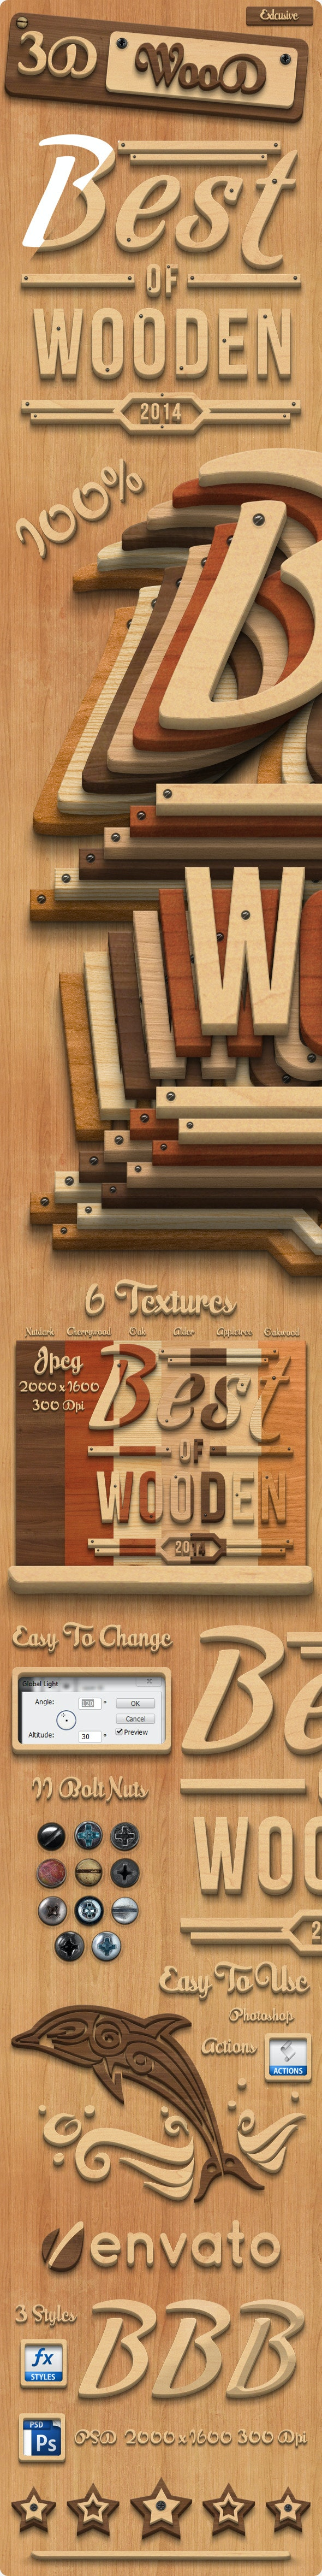 3D Wood Creation Photoshop Actions - Actions Photoshop